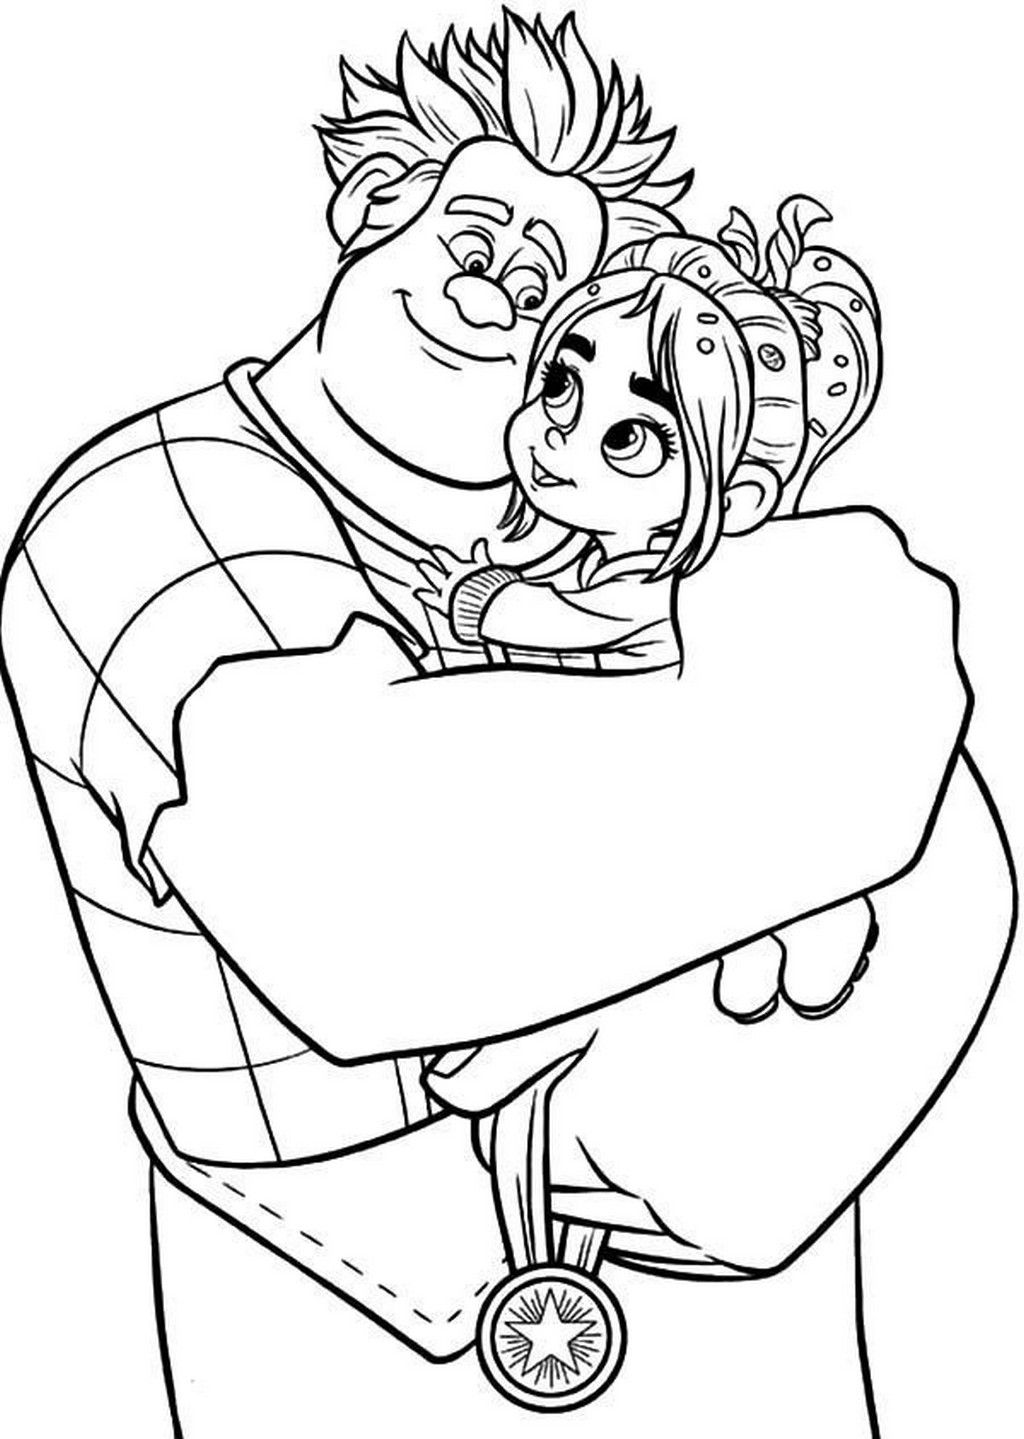 Wreck It Ralph Printable Coloring Pages For Kids